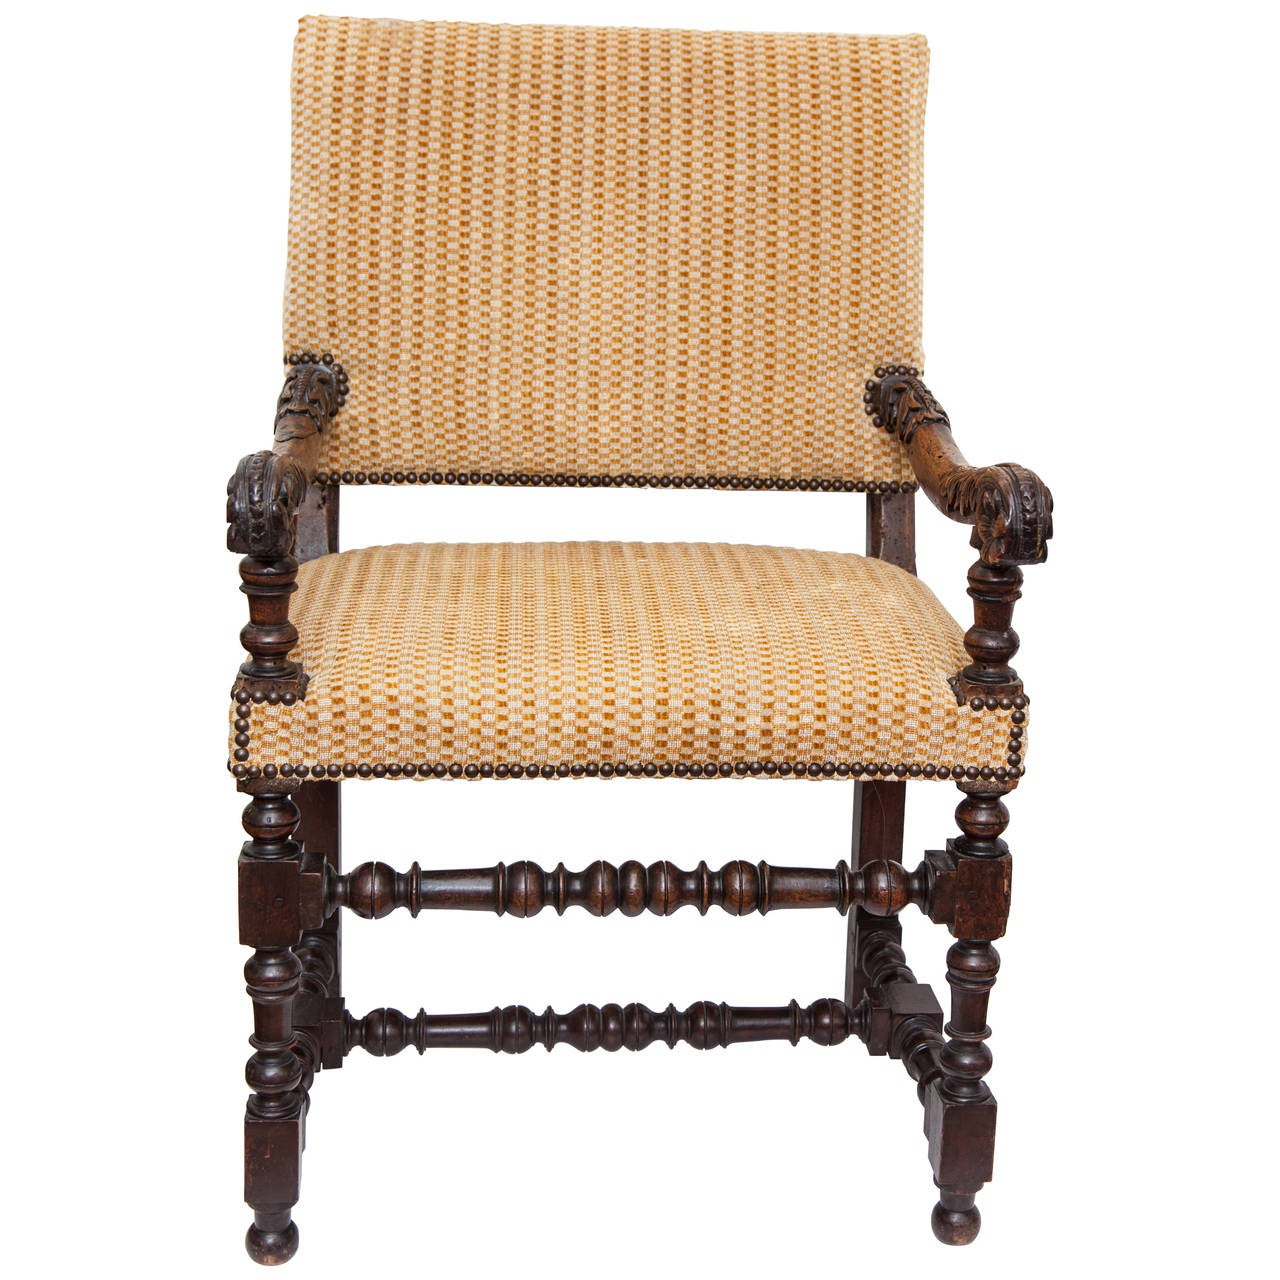 18th Century French Louis XV Walnut Armchair with Upholstered Back and Seat